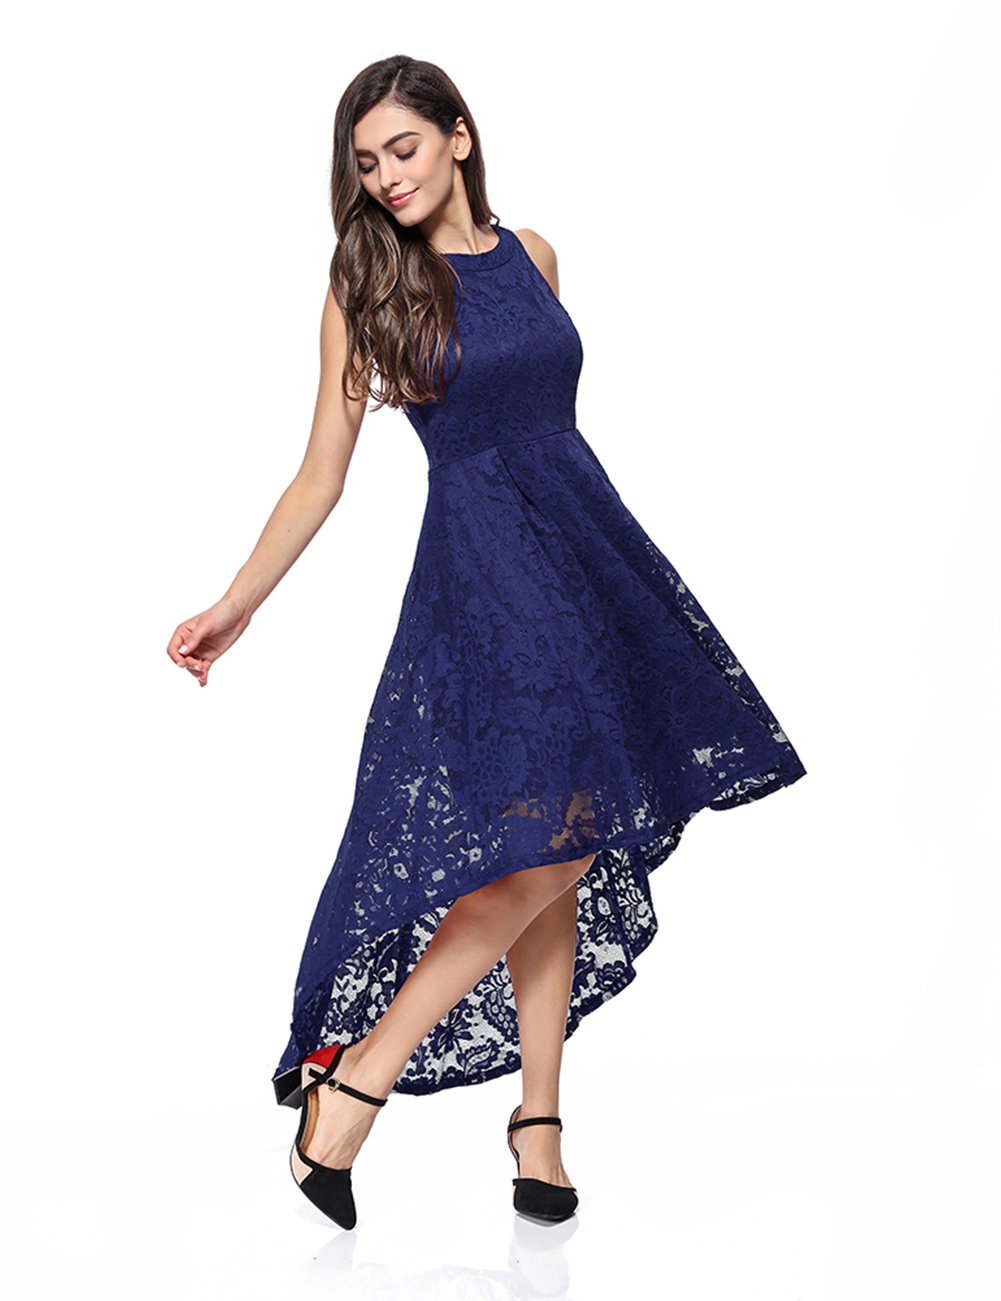 //cdn.affectcloud.com/feelingirldress/upload/imgs/2019-06-11/VZ190800-BU6/VZ190800-BU6-6.jpg